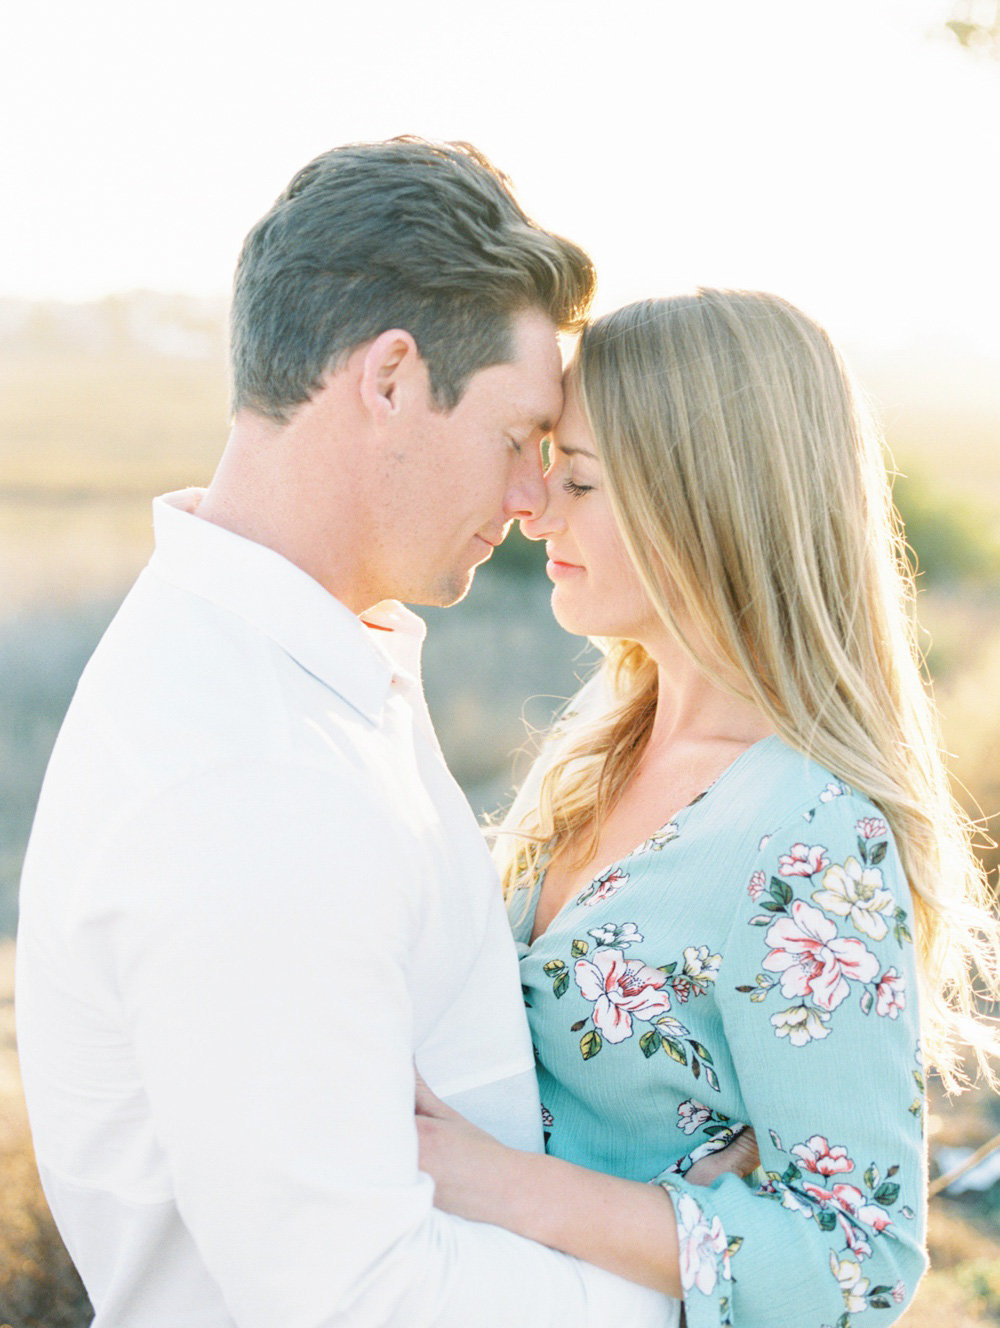 San-Diego-Engagement-Photographer-Mandy-Ford-009